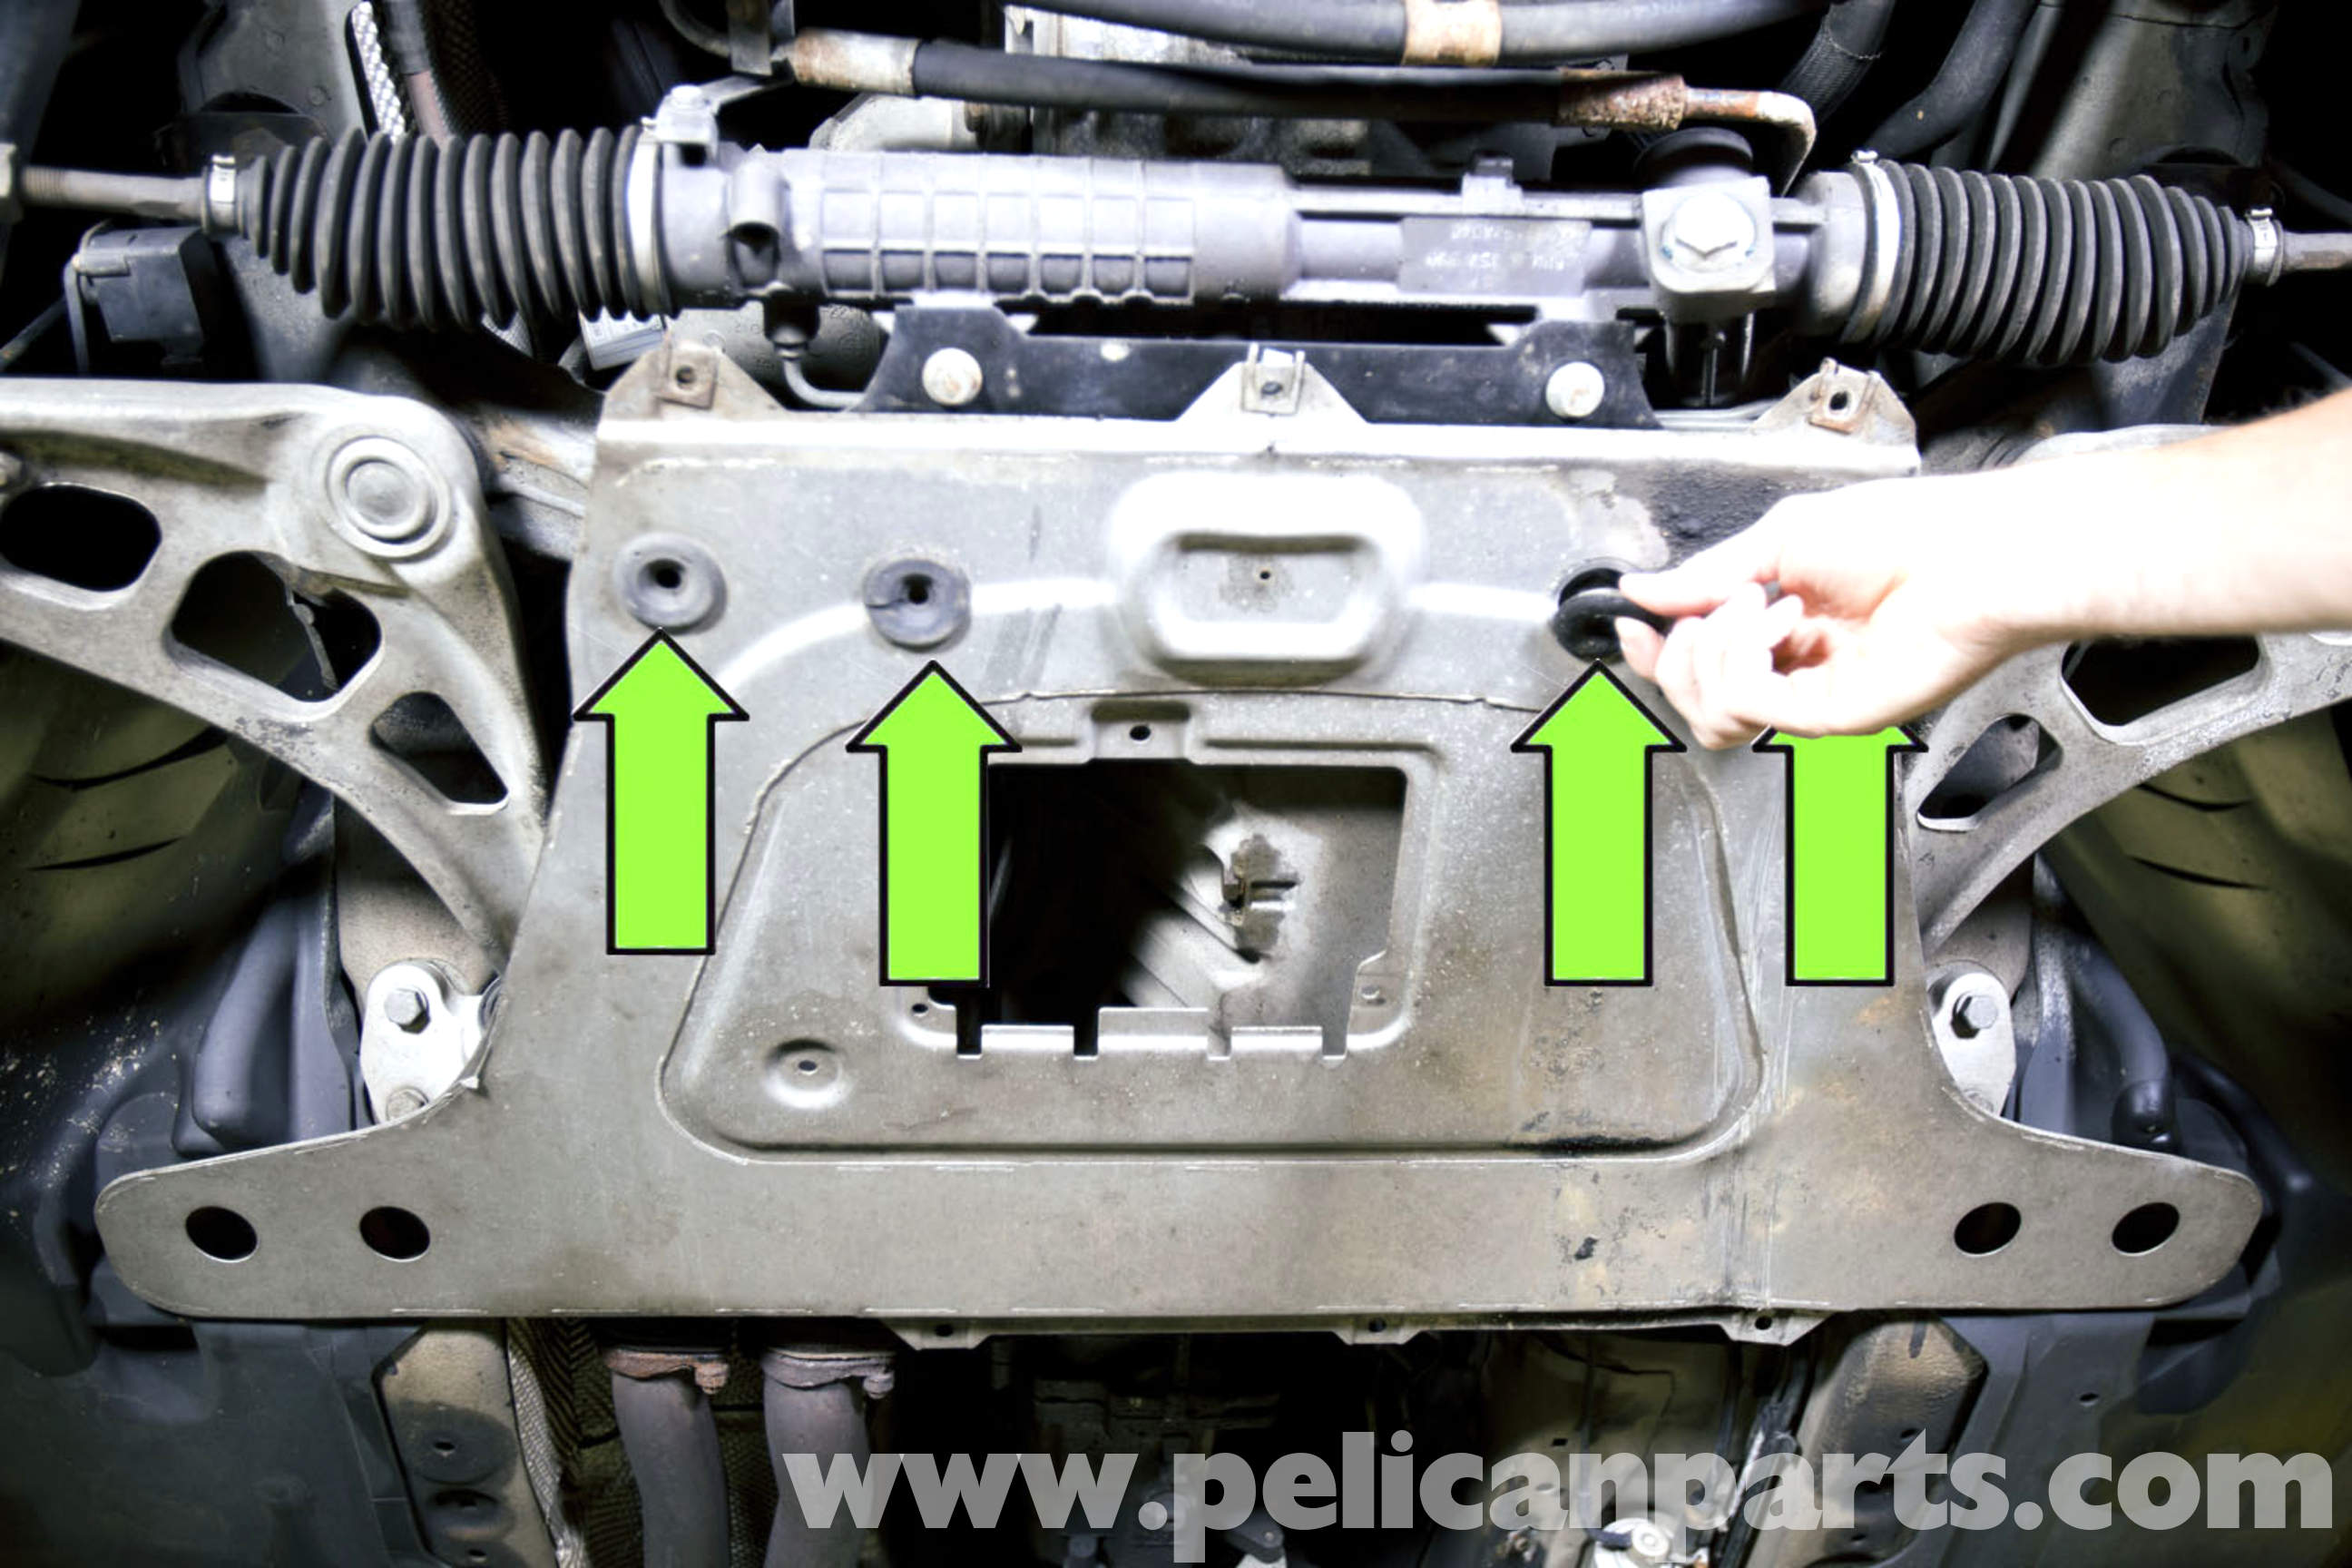 Bmw E46 Cooling System Overhaul in addition 16 ENGINE Tackling Your Valve Cover further E36 Oil Change besides 32 WATER Flushing Your Coolant together with Land Rover Engine Cooling Diagram. on 2006 bmw 325i engine diagram